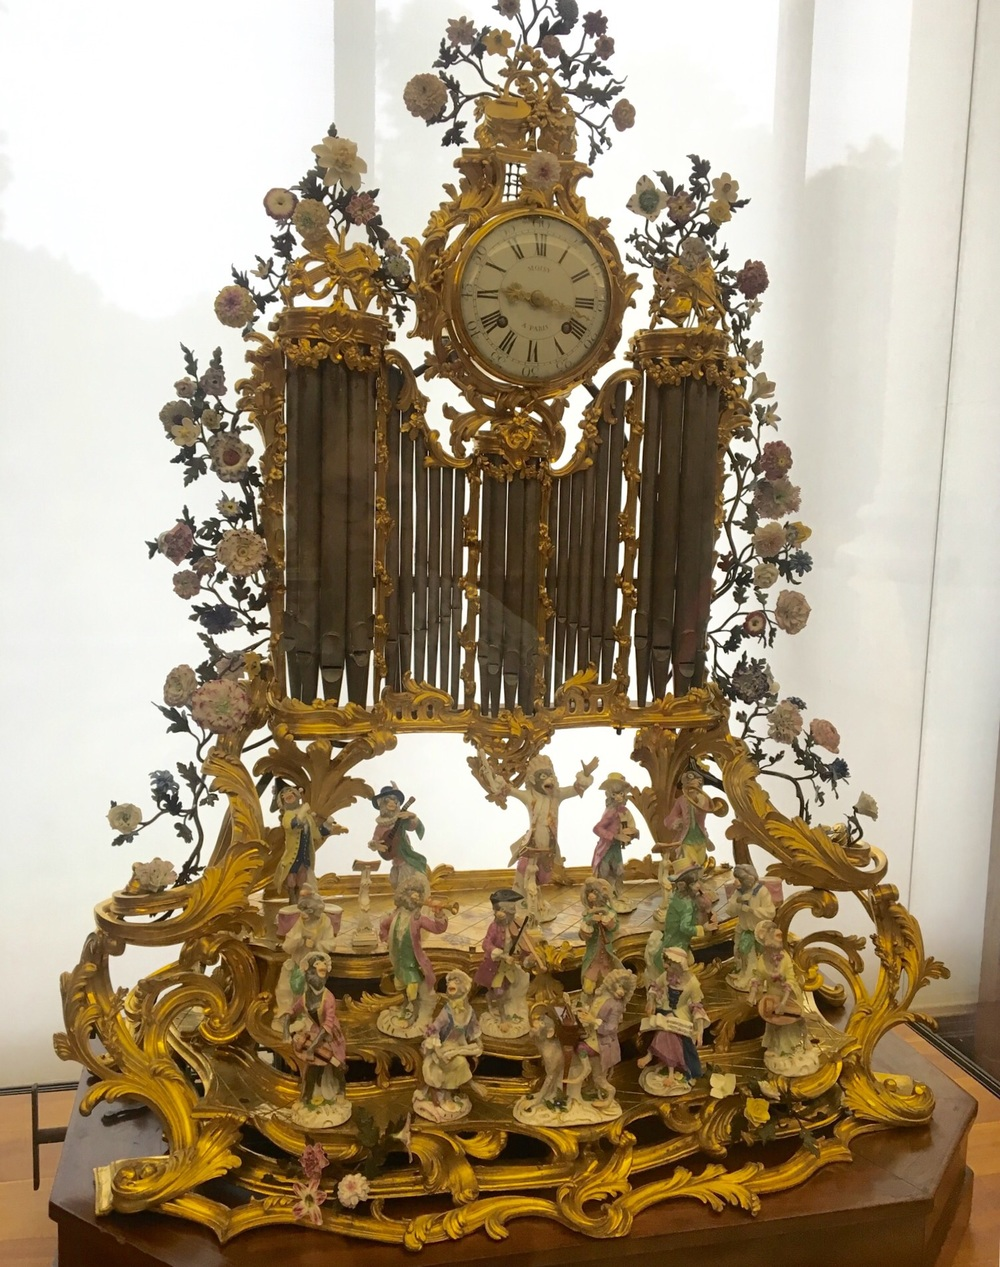 """Trying to help my adult daughter pack reminds me of the saying """"not my circus, not my monkeys"""" - artistically represented here by this Louis the 15th clock at Petit Palais, by multiple artisits, (ceramics by Kandler, Reinicke) depicting an overmatched ceramic monkey band conductor and his """"circus""""."""